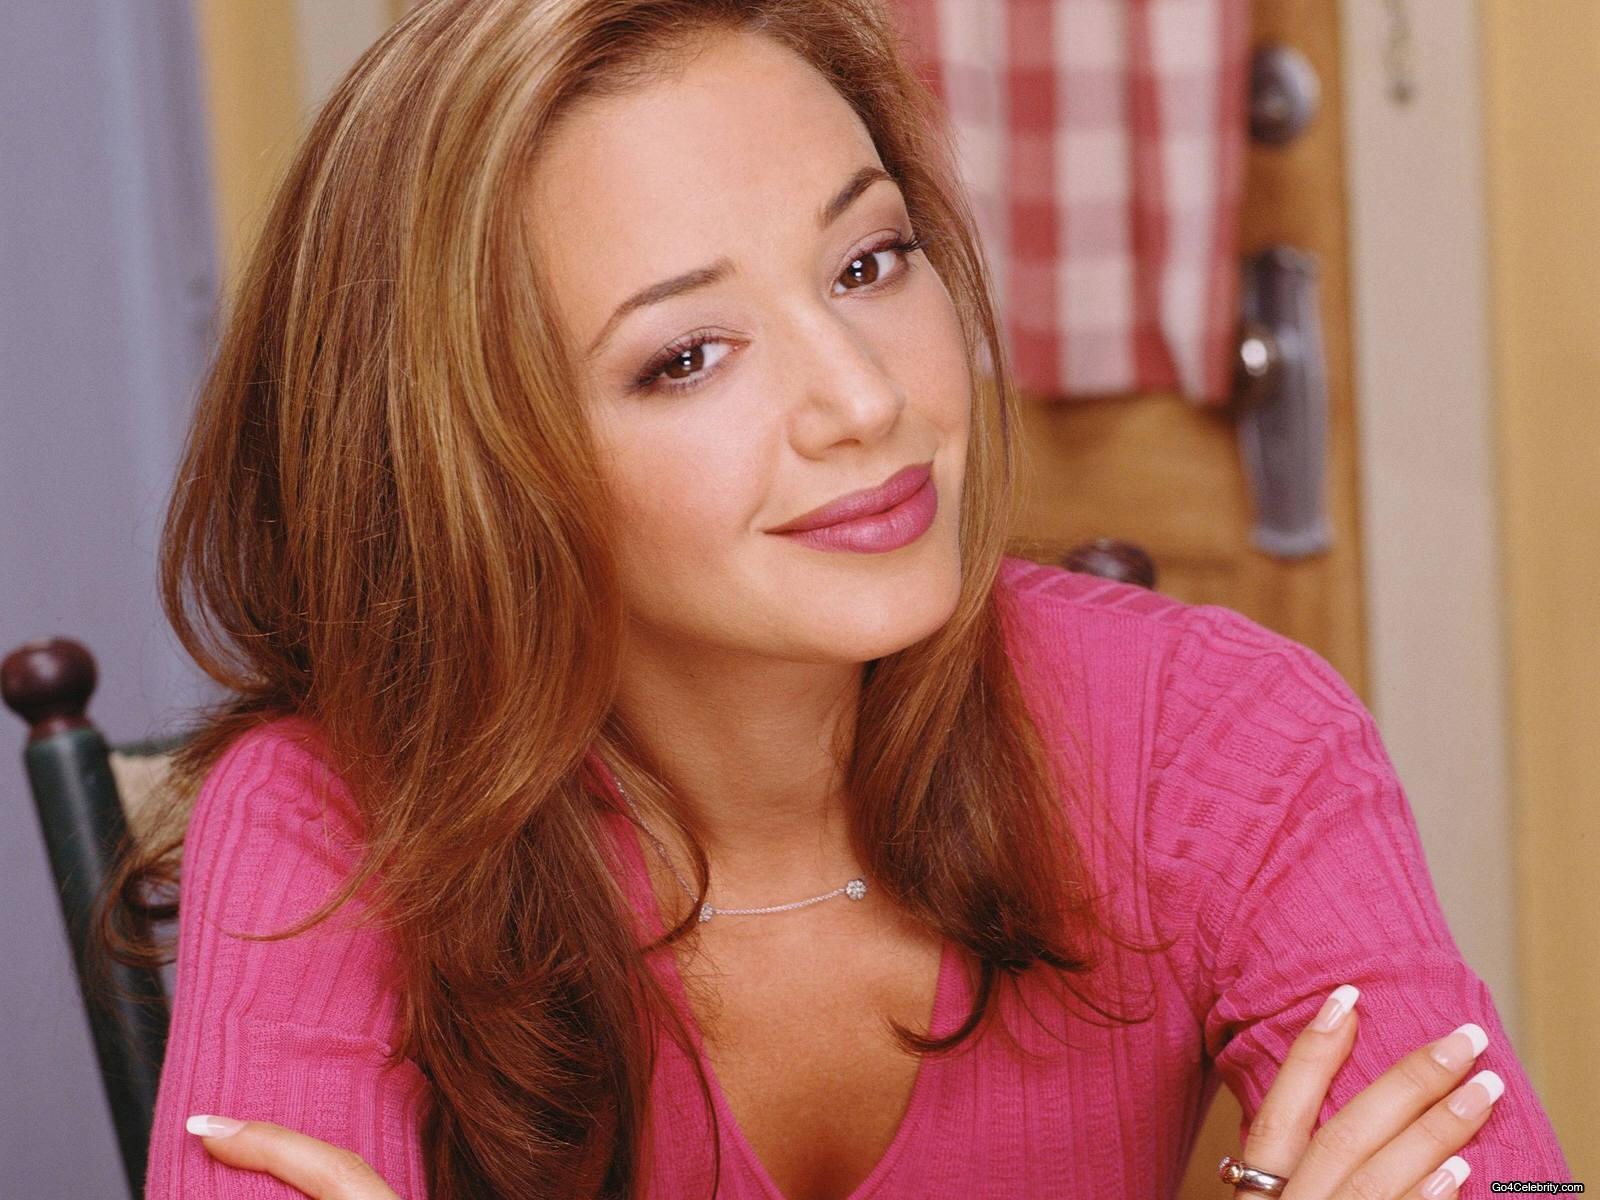 Seems Chick from king of queens not